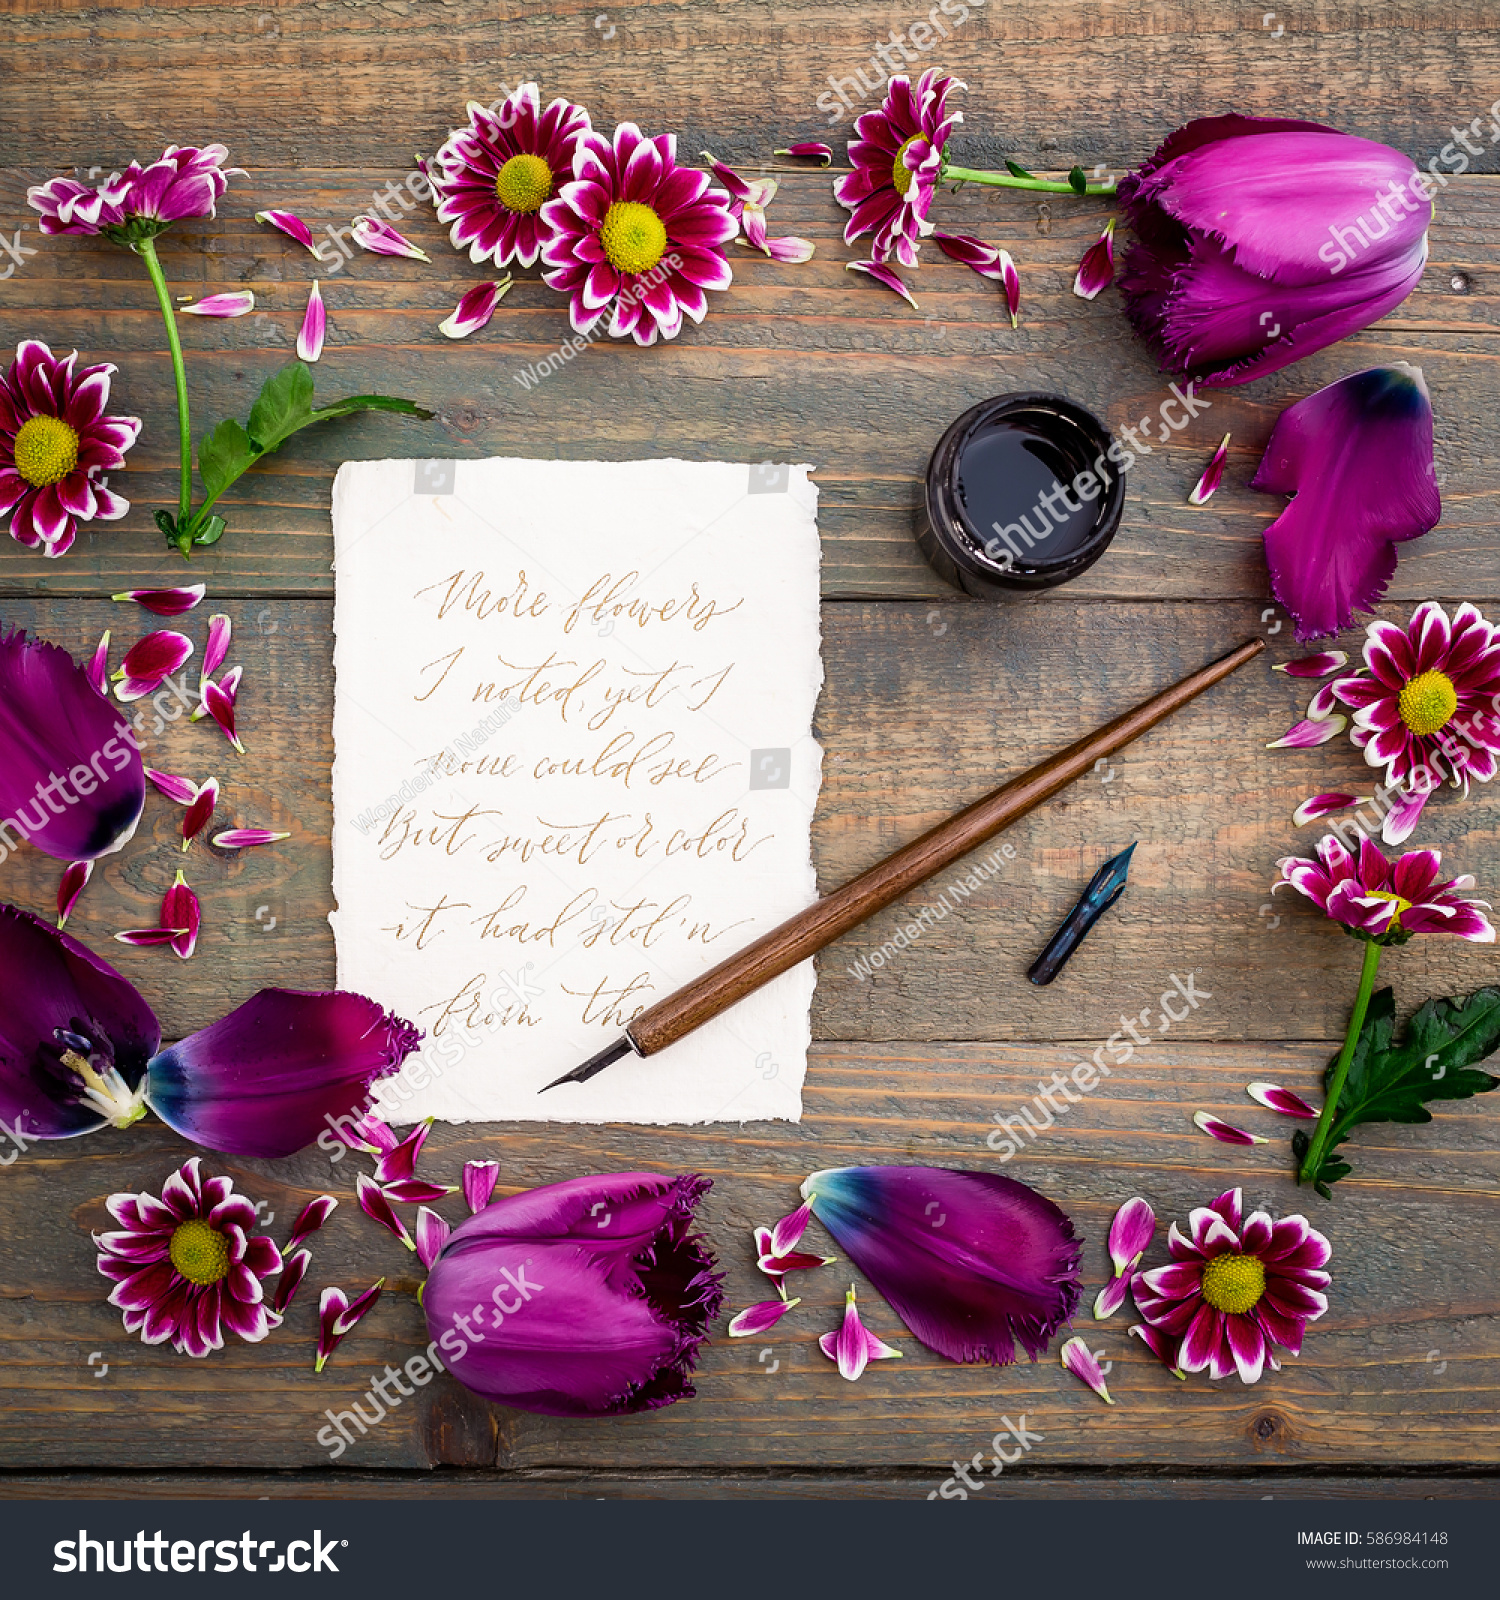 Calligraphic Text Written On Paper Card And Flowers On Rustic